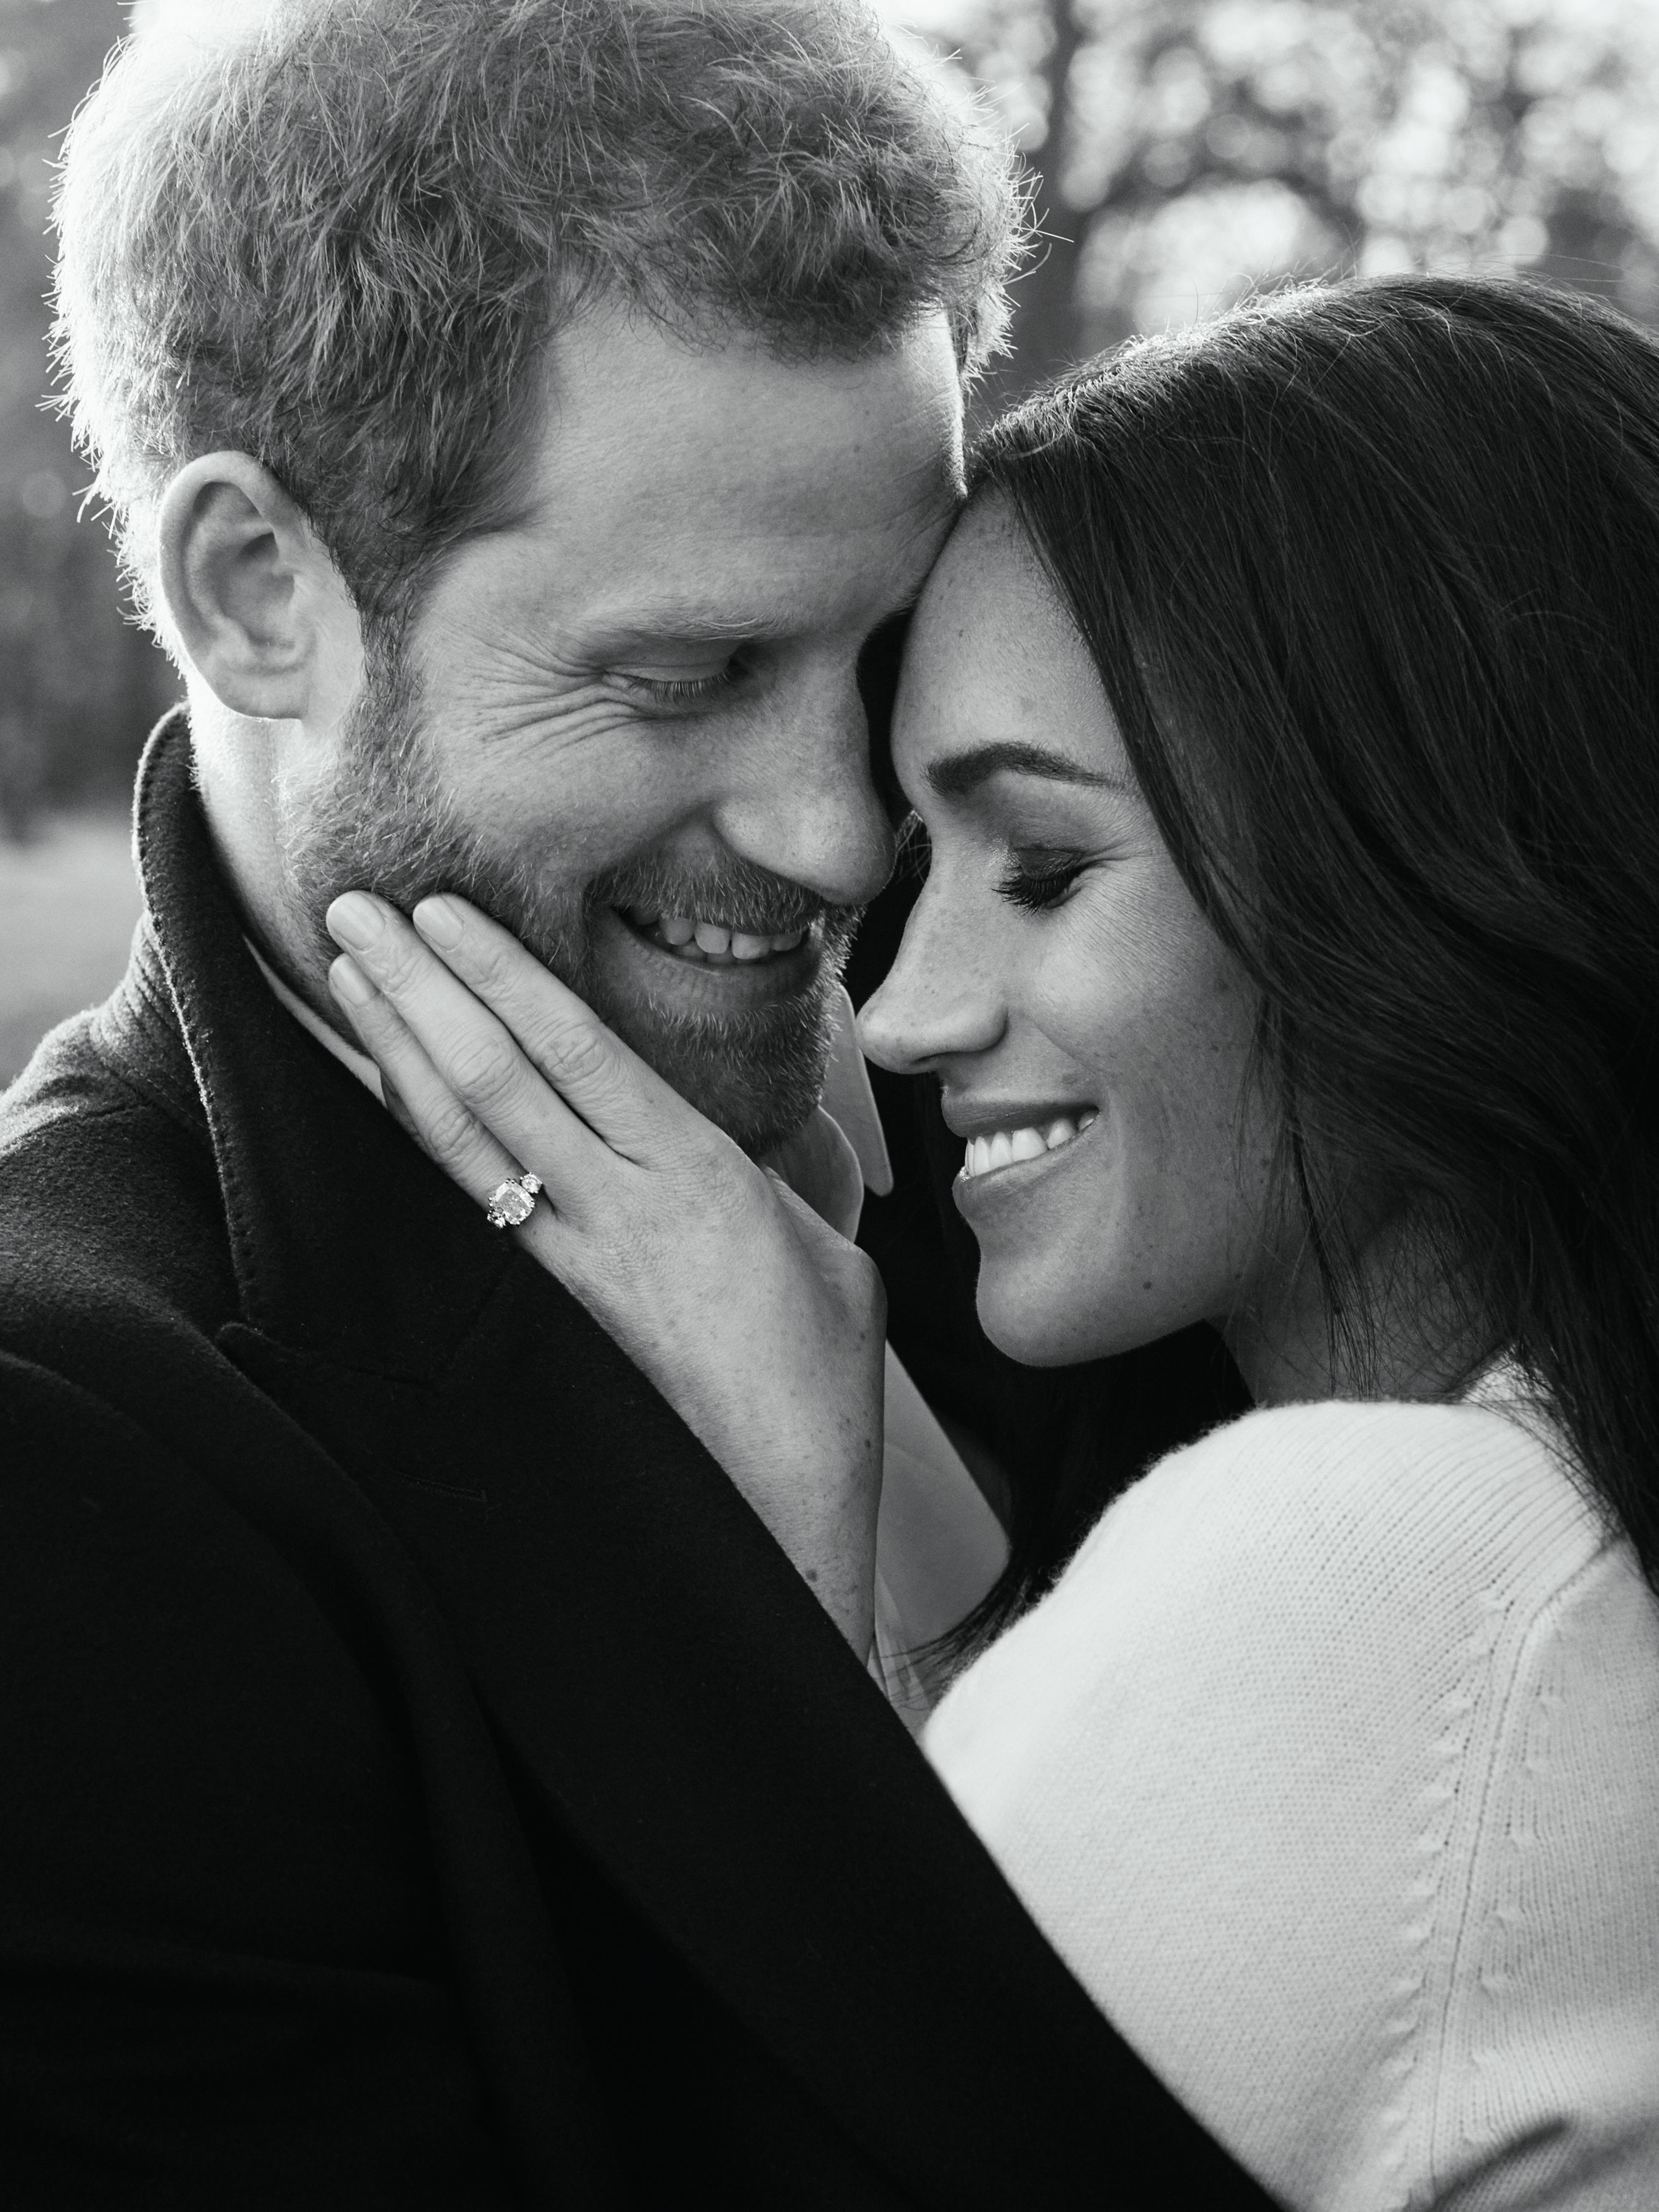 Prince Harry and Meghan Markle's official engagement photo November 2017 | Source: Getty Images